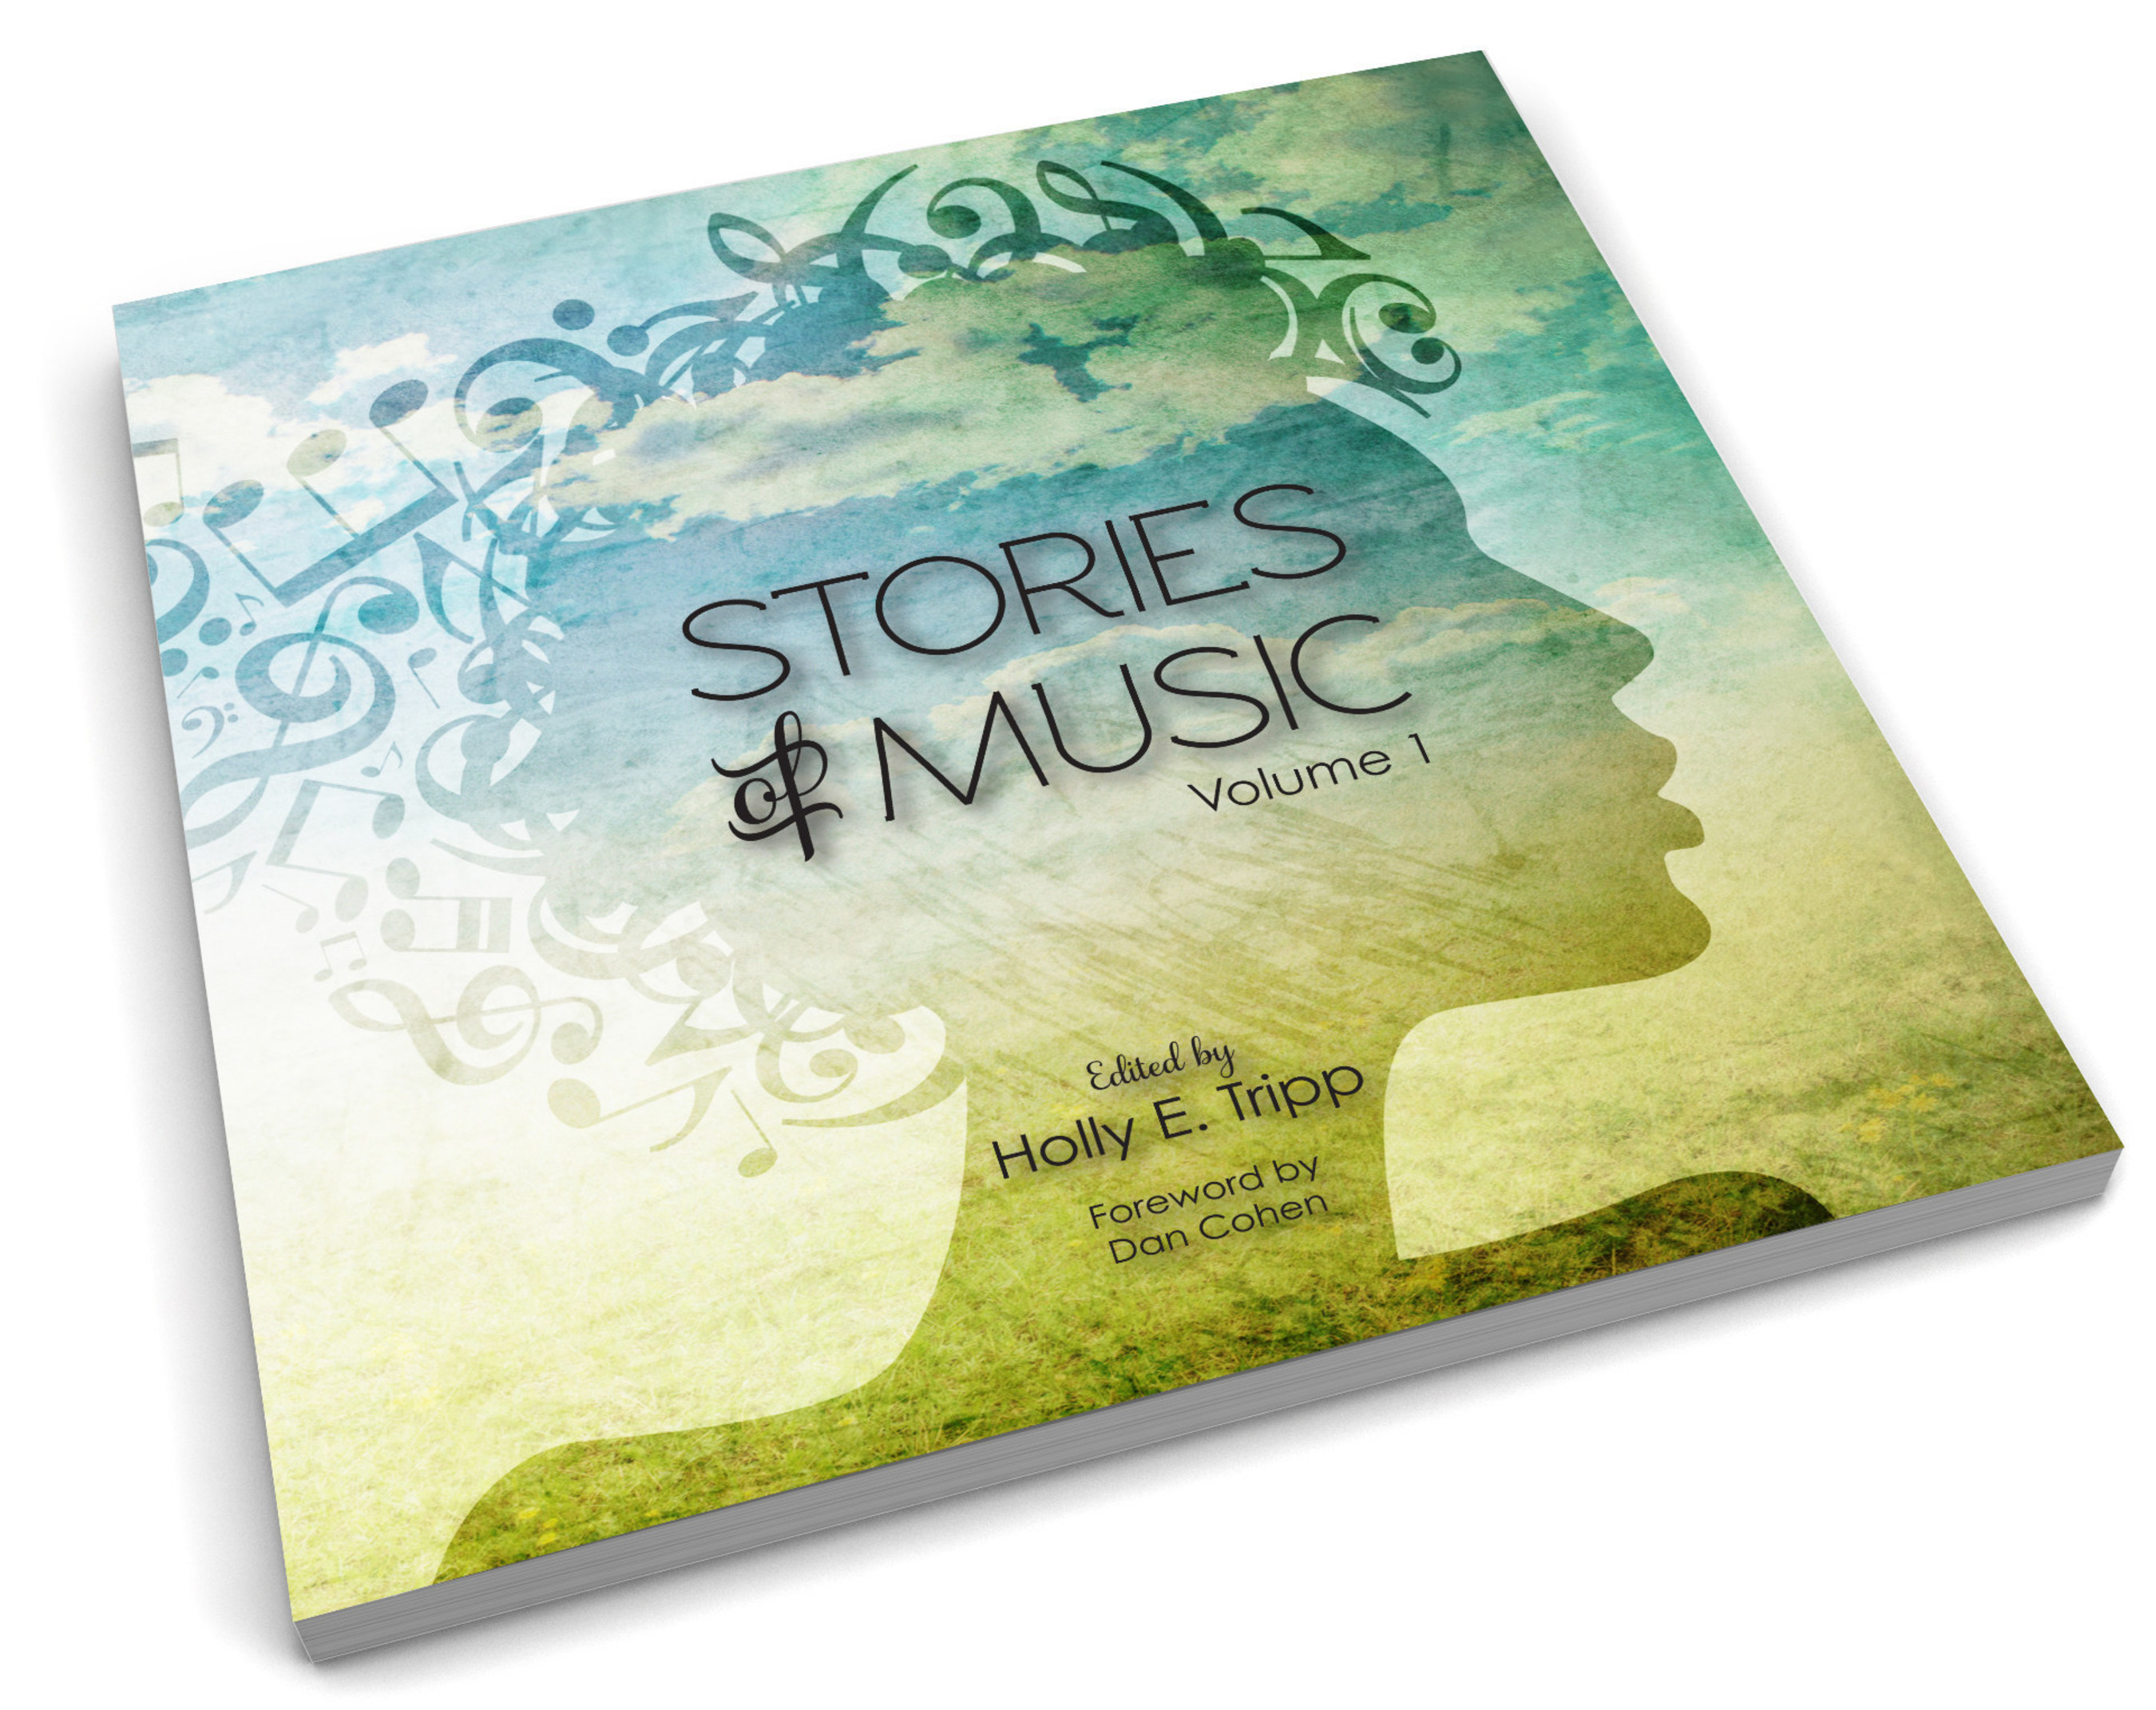 Stories of Music book